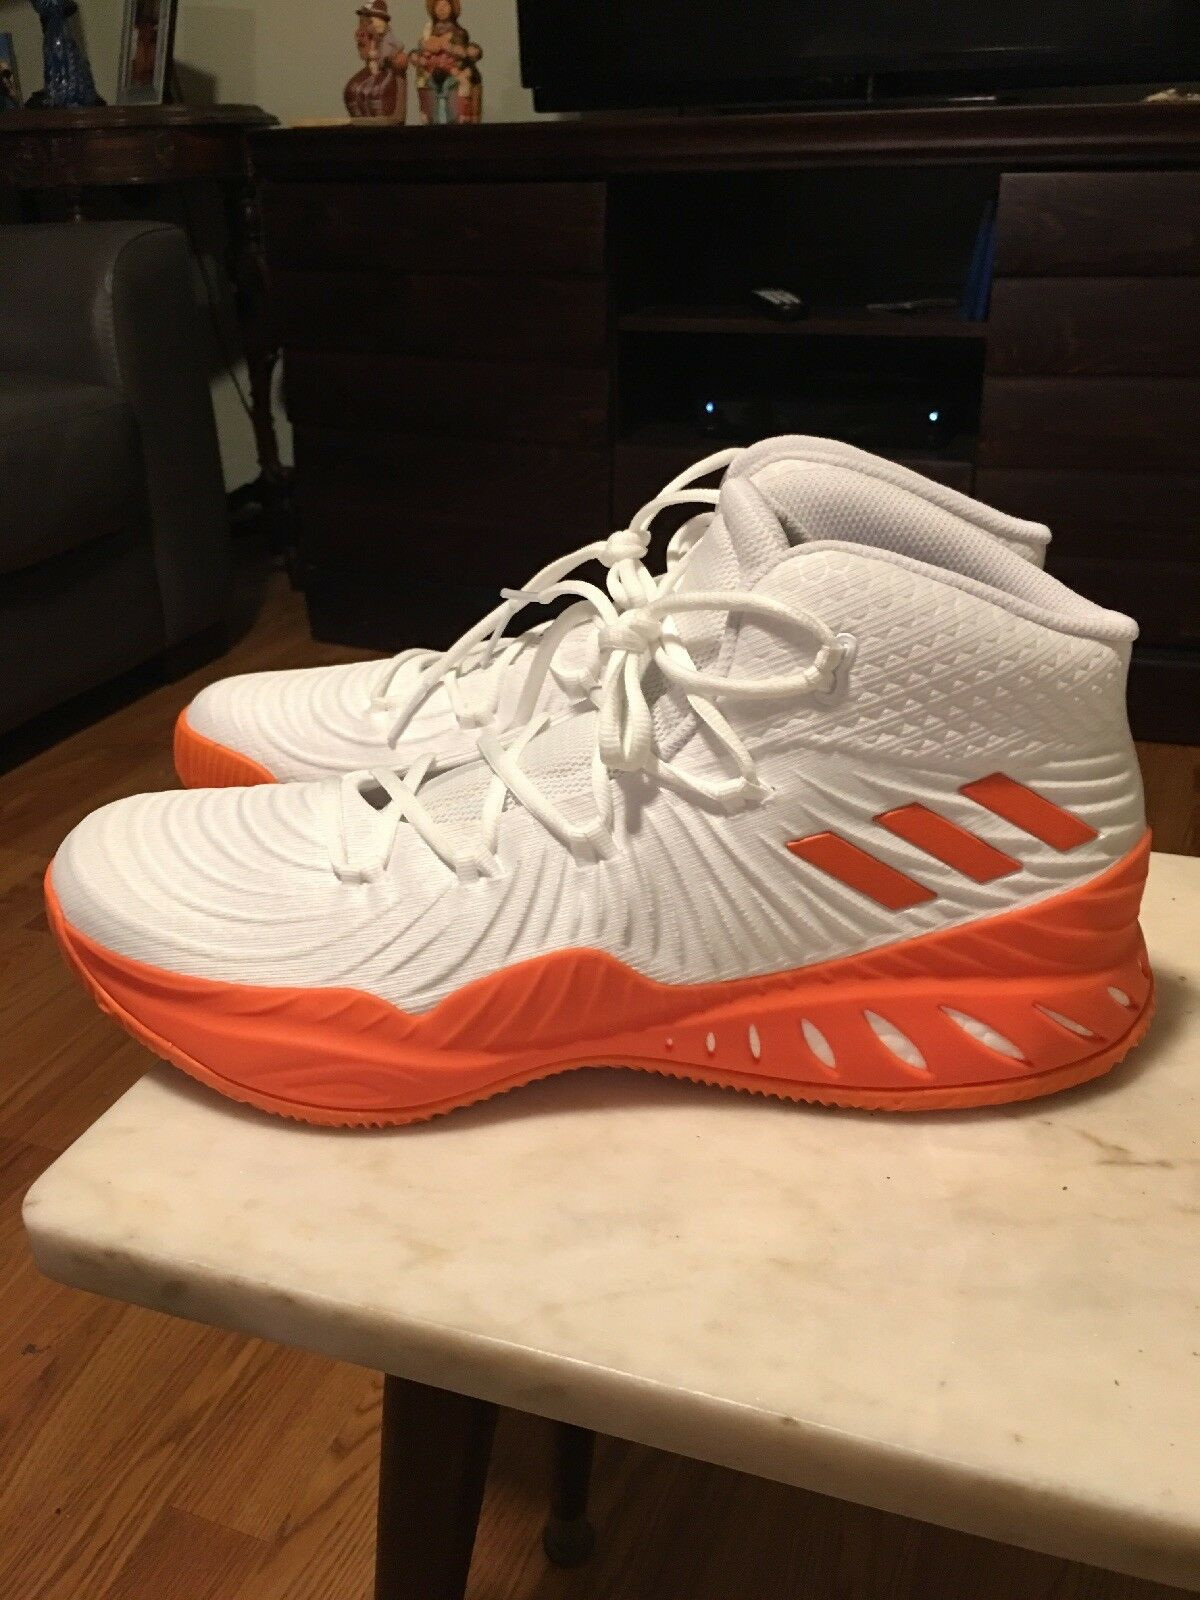 Brand New Adidas Crazy Explosive Men's Basketball shoes Sz 16 orange White Boost